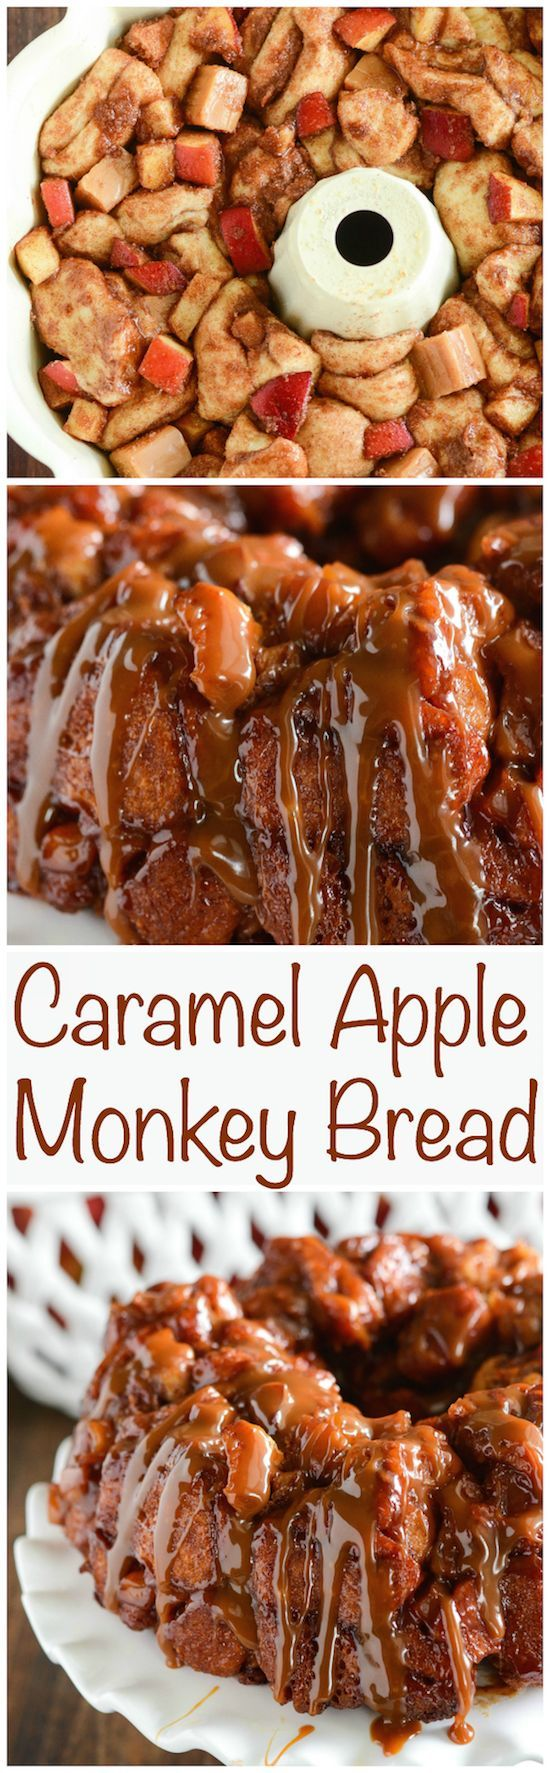 Caramel Apple Monkey Bread - only 6 ingredients! Caramel, fresh apple bites and lots of gooey sweet cinnamon roll bites!